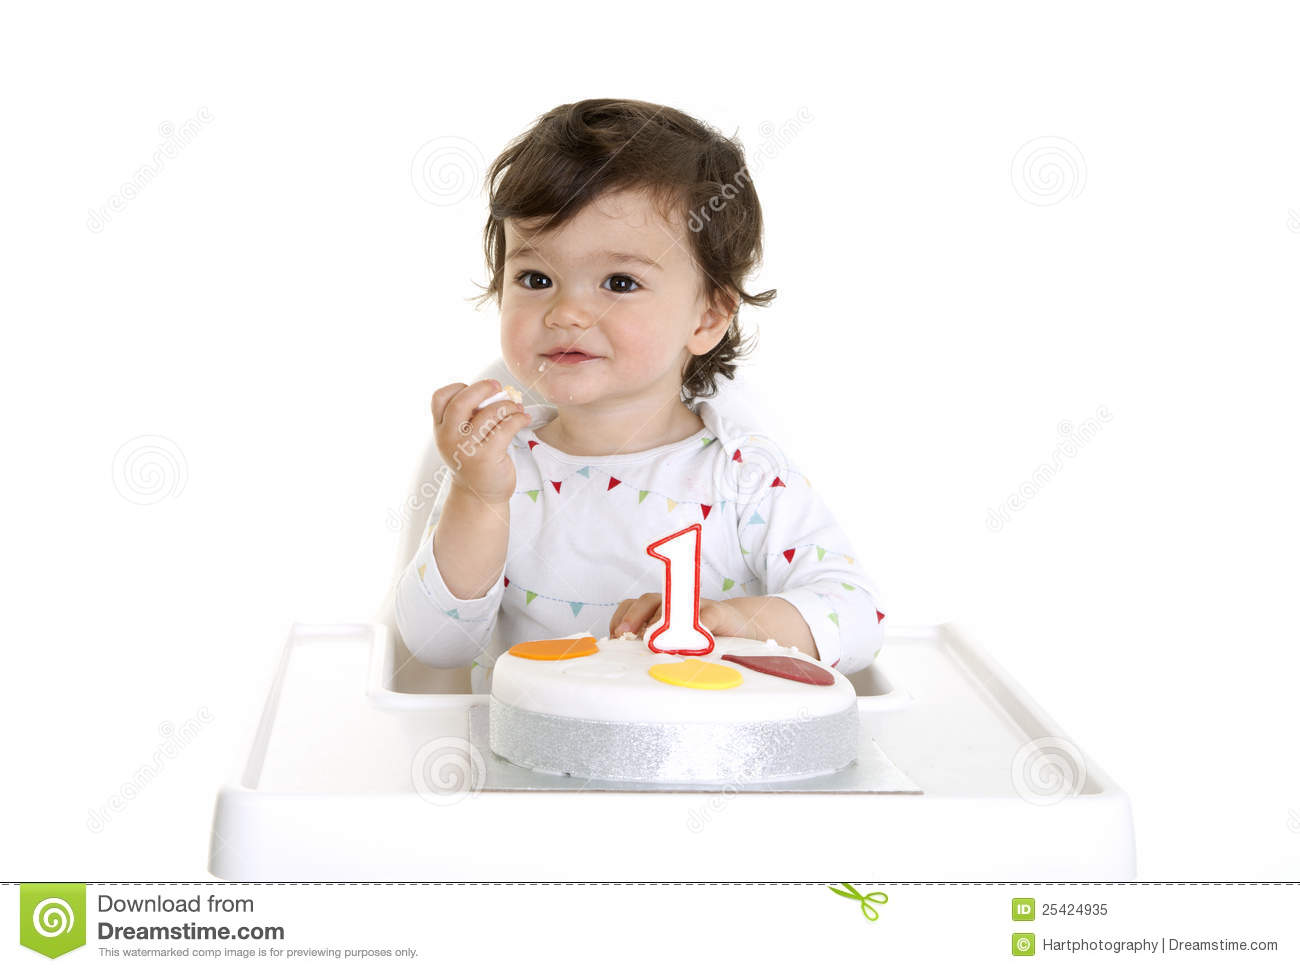 Baby Eating Cake Royalty Free Stock Photo - Image: 25424935